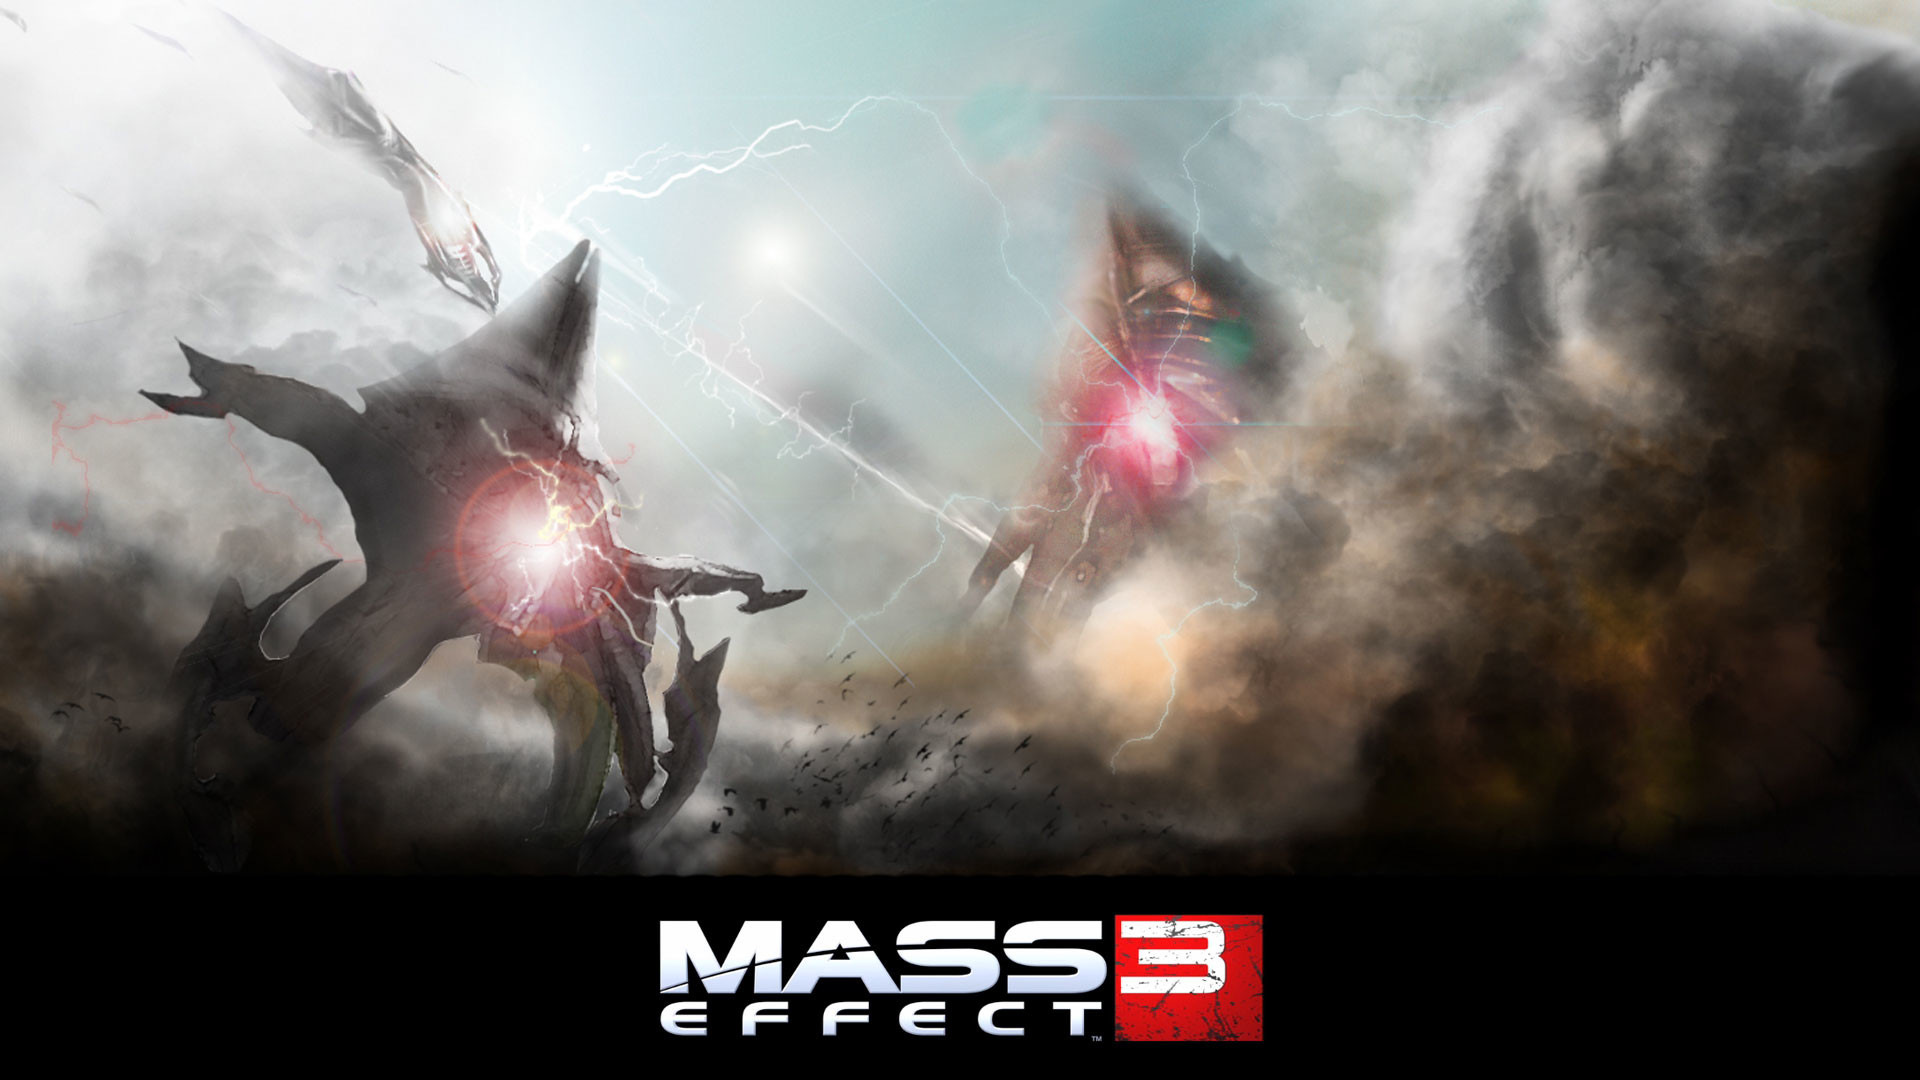 Mass Effect 3 Wallpapers in HD | High Resolution